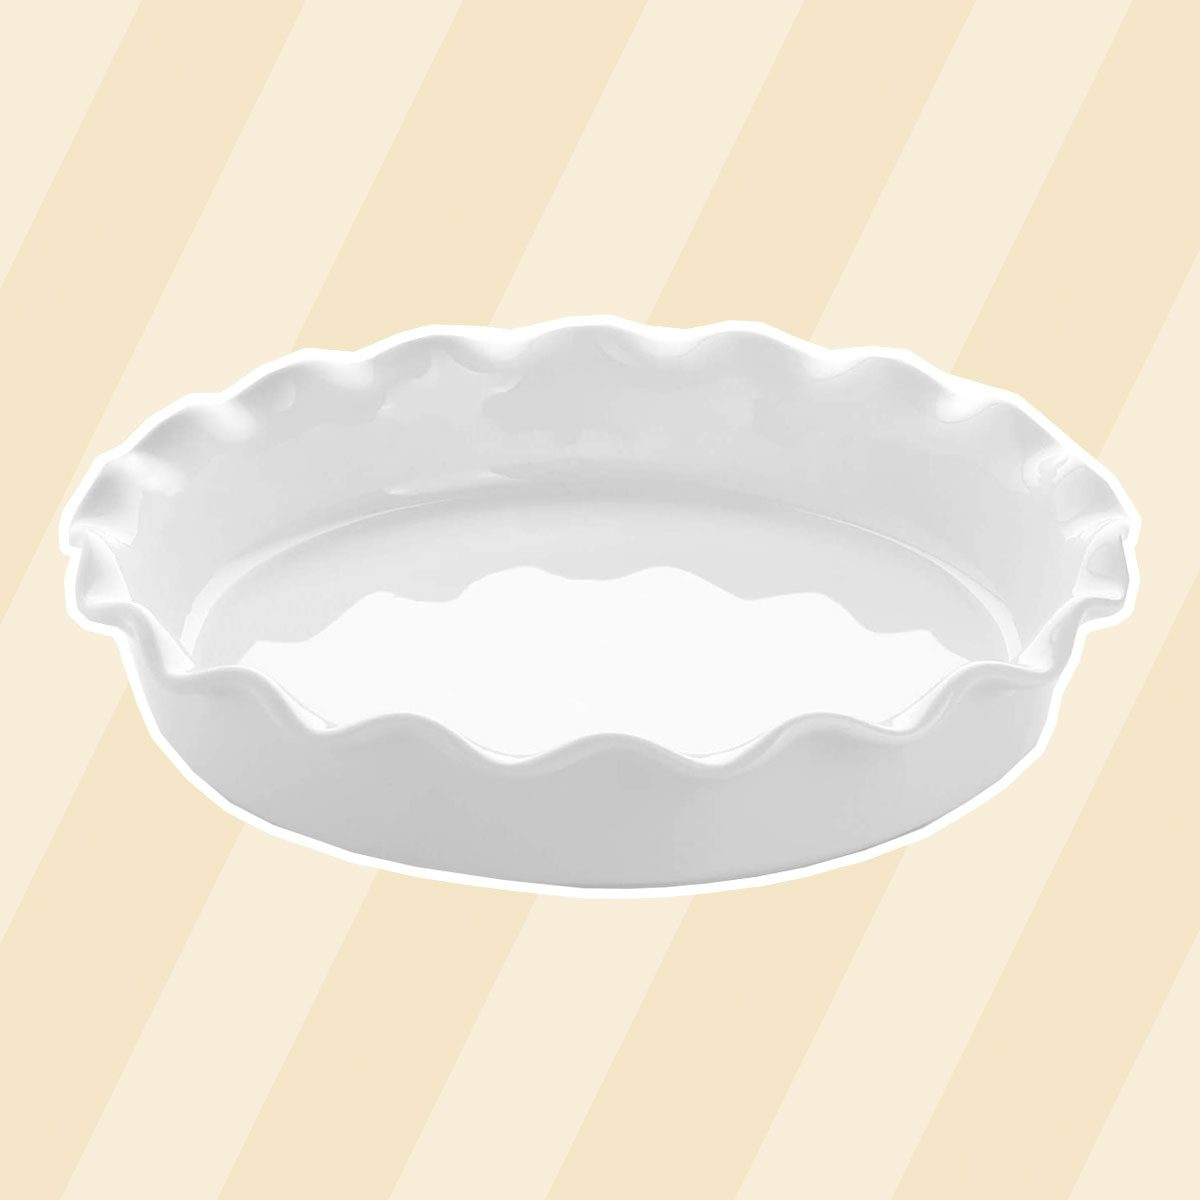 Sweese 518.101 Porcelain Pie Pan, Round Pie Plate Baking Dish with Ruffled Edge, 10.5 Inches, White